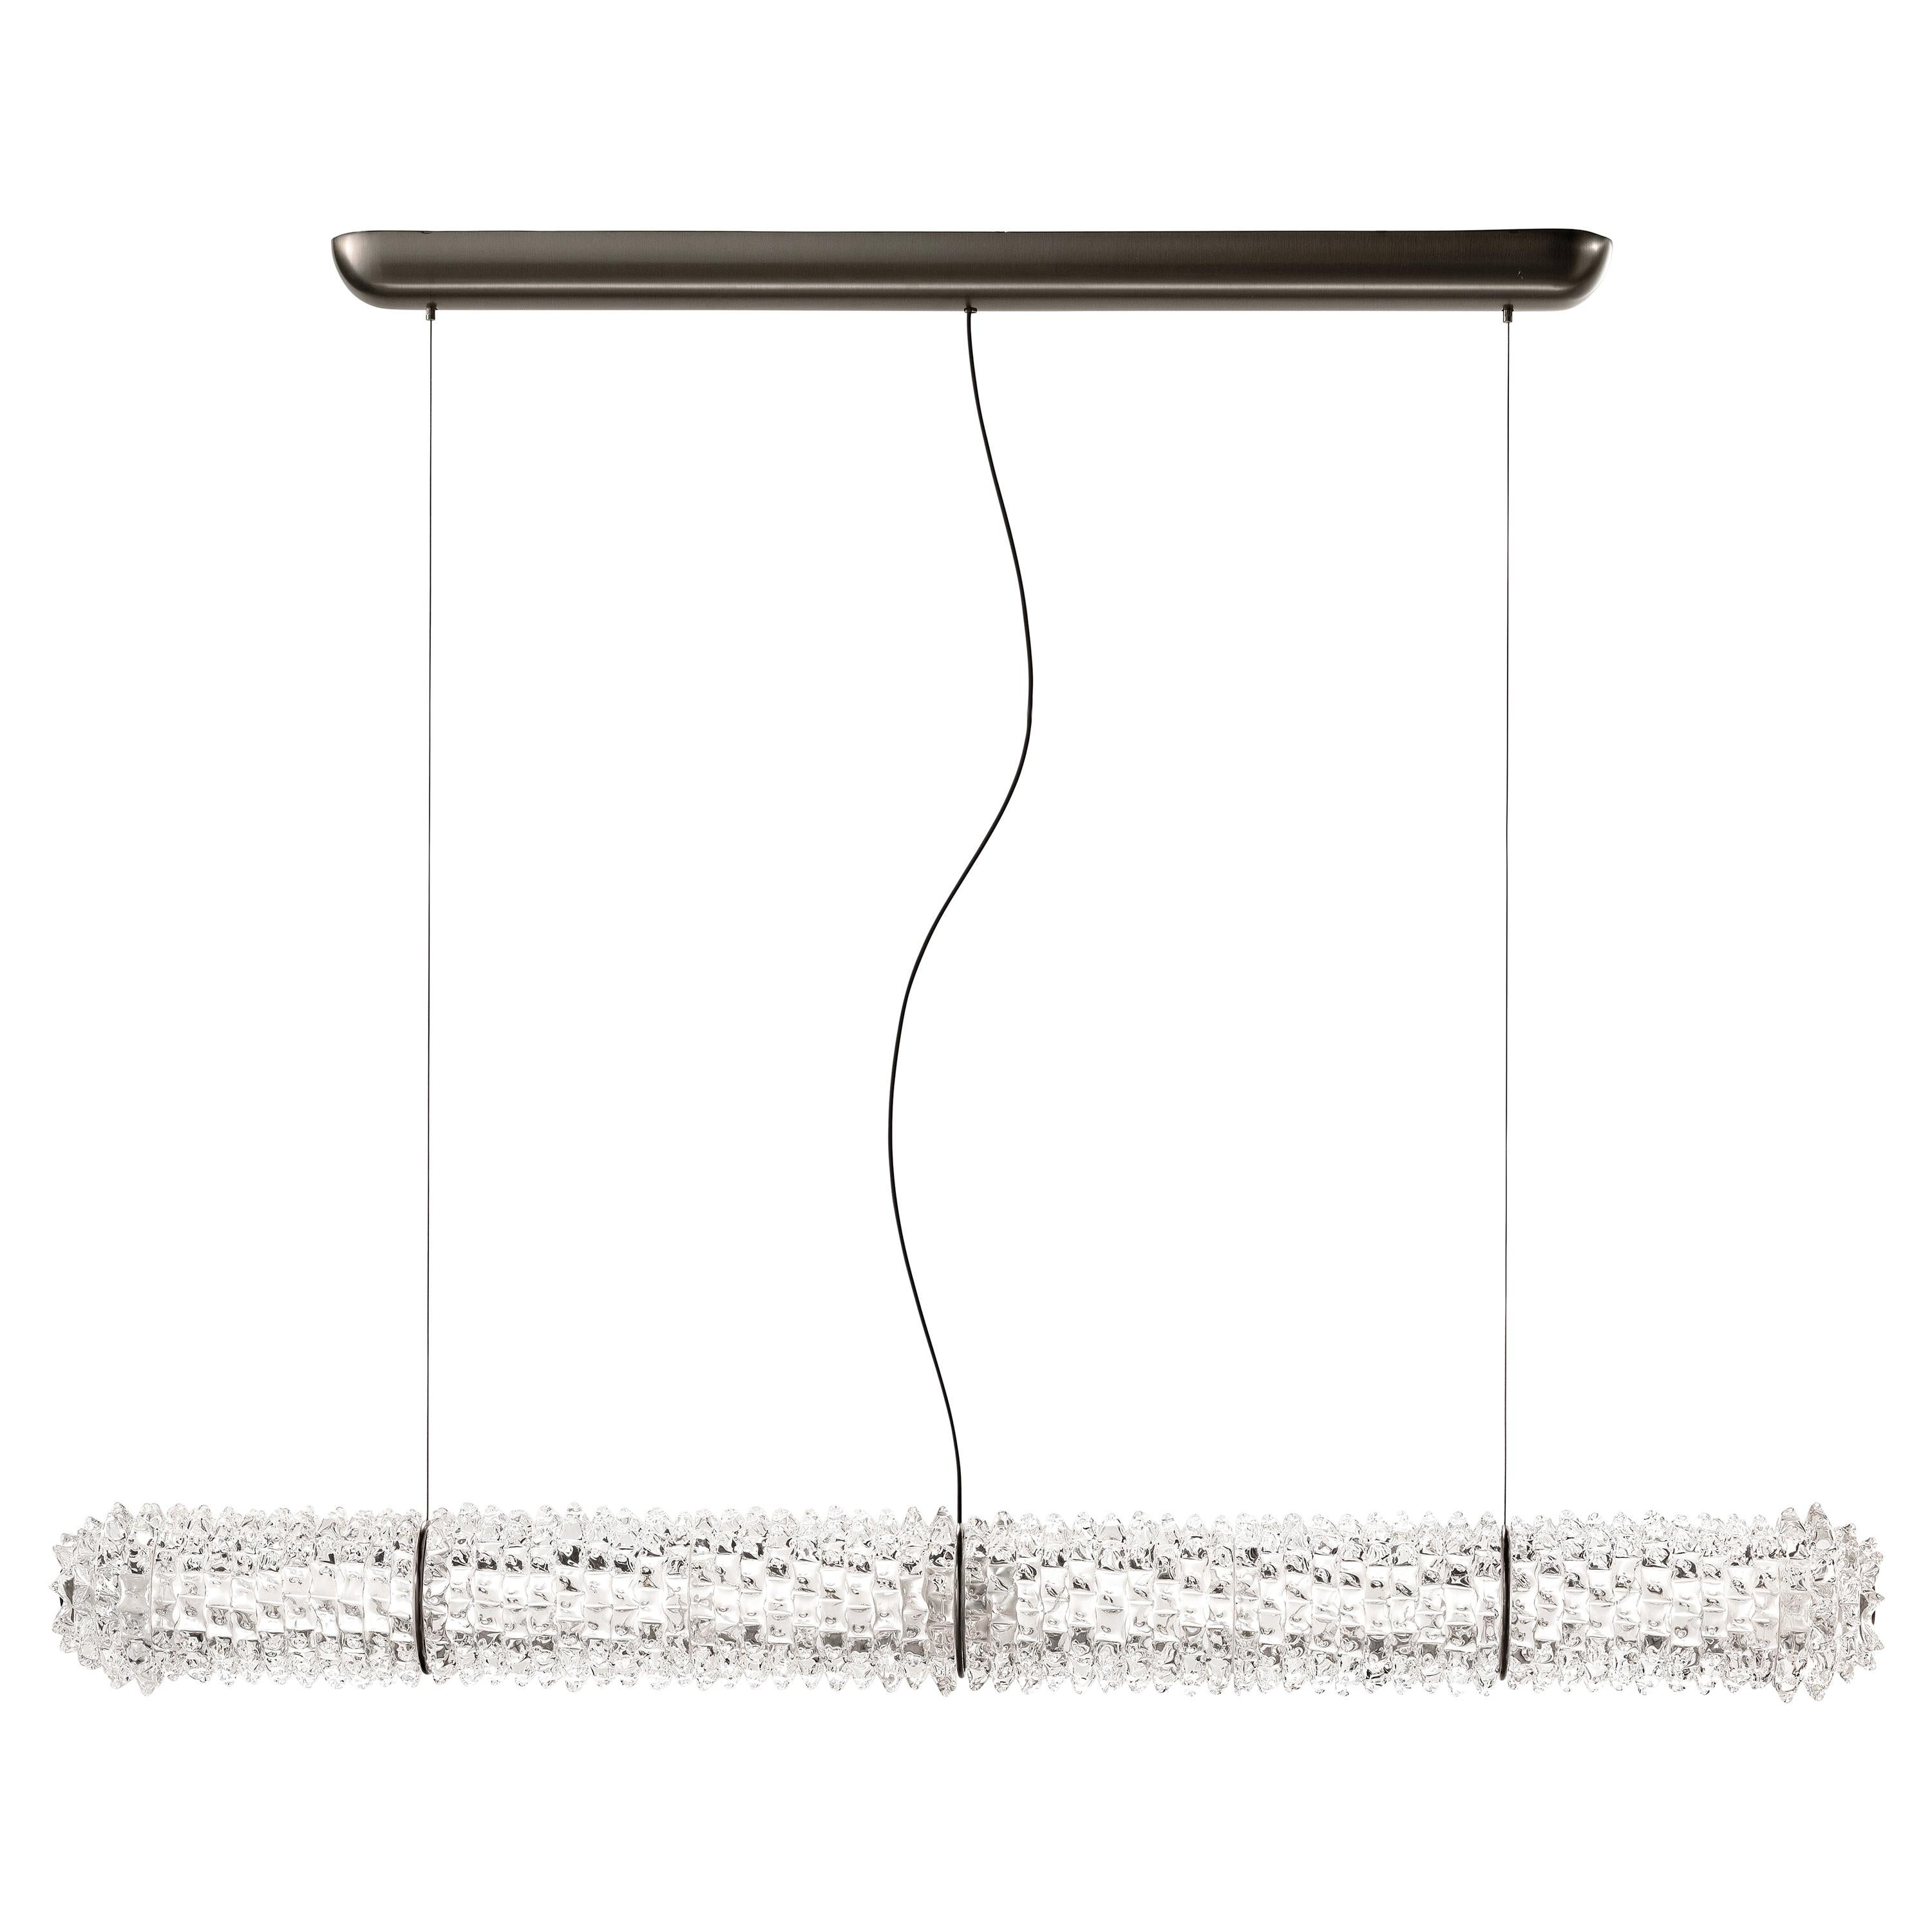 Barovier & Toso Opera 7388 Suspension Light in Crystal with Brushed Gold Finish